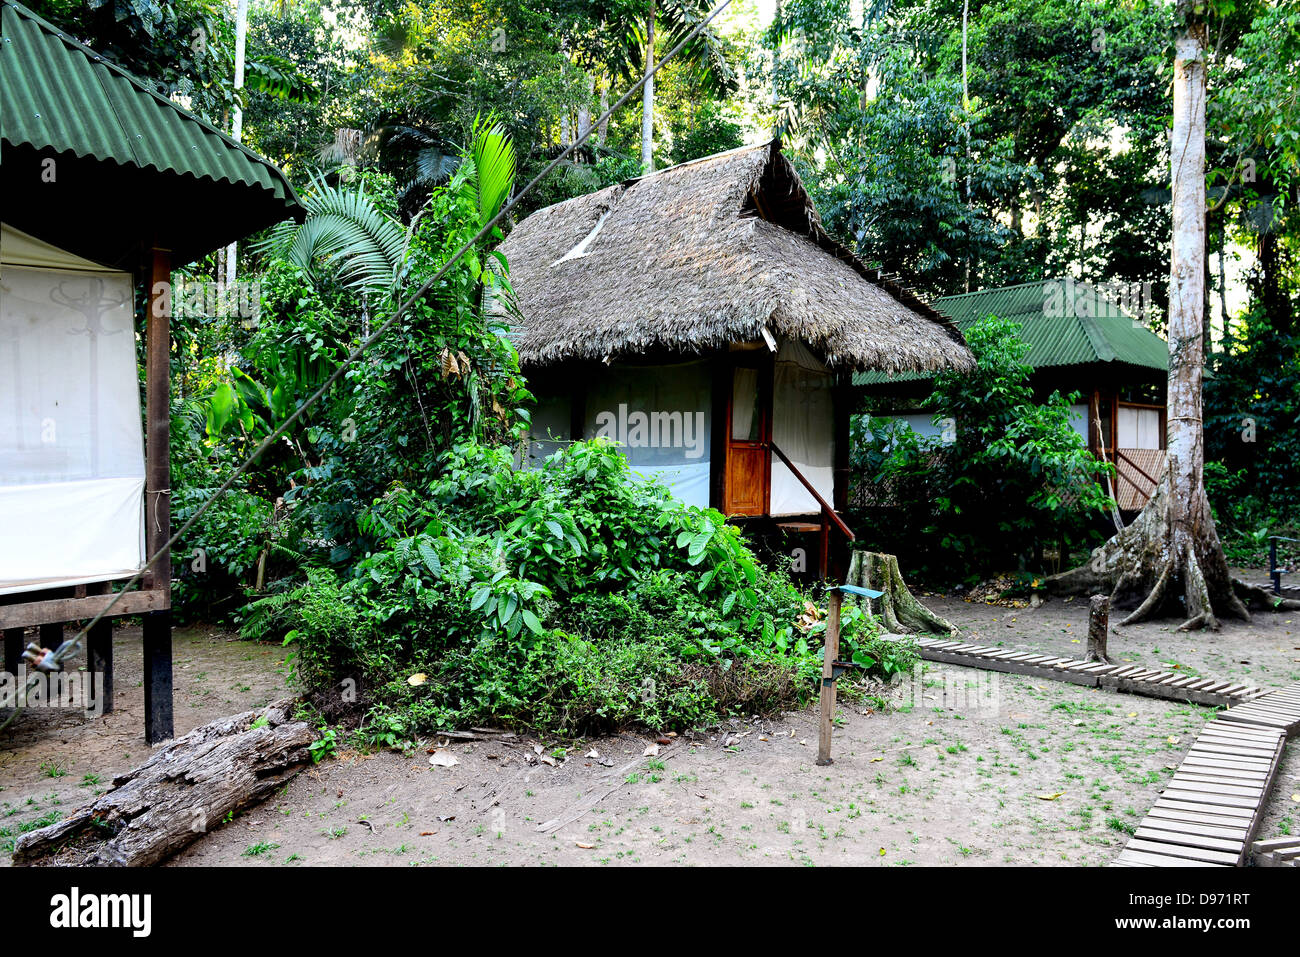 Ornithologists' scientific camp in the jungles of Peru. - Stock Image